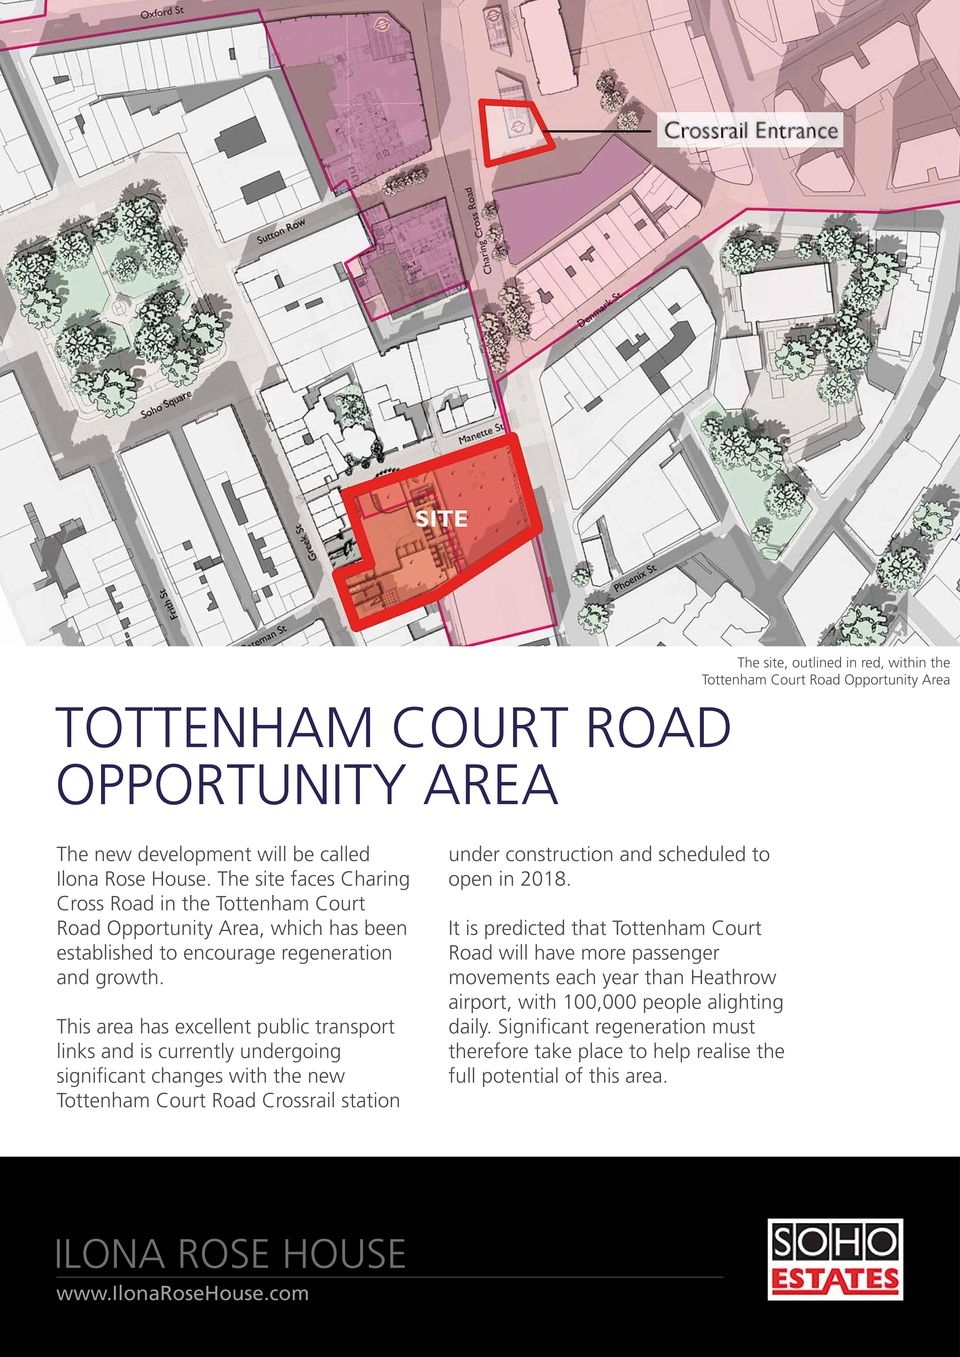 This area has excellent public transport links and is currently undergoing significant changes with the new Tottenham Court Road Crossrail station under construction and scheduled to open